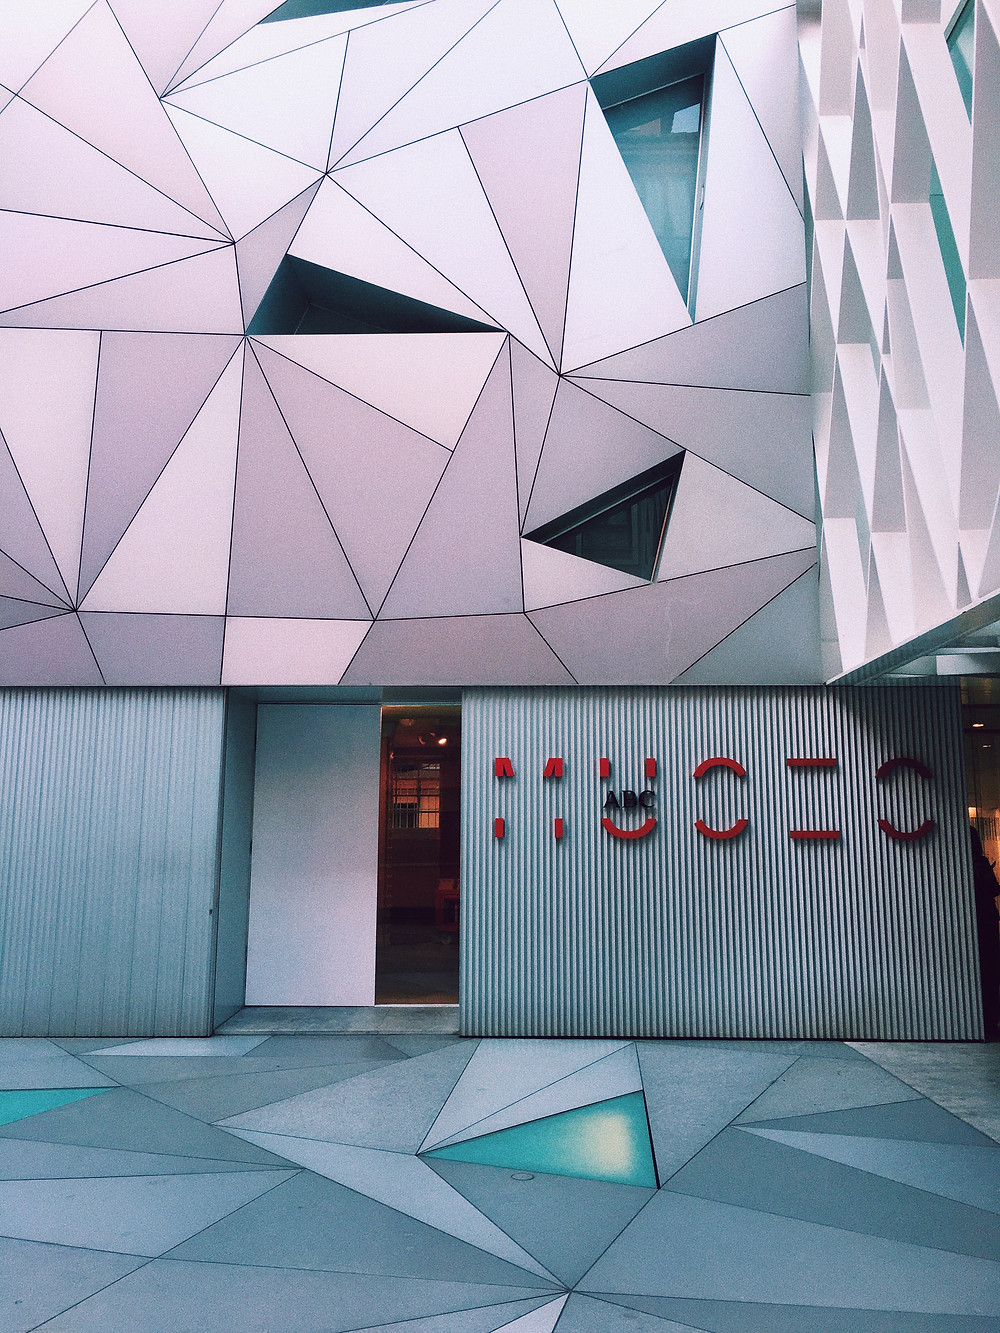 ABC Museum in Madrid for art lovers - one of the best things to see in Madrid